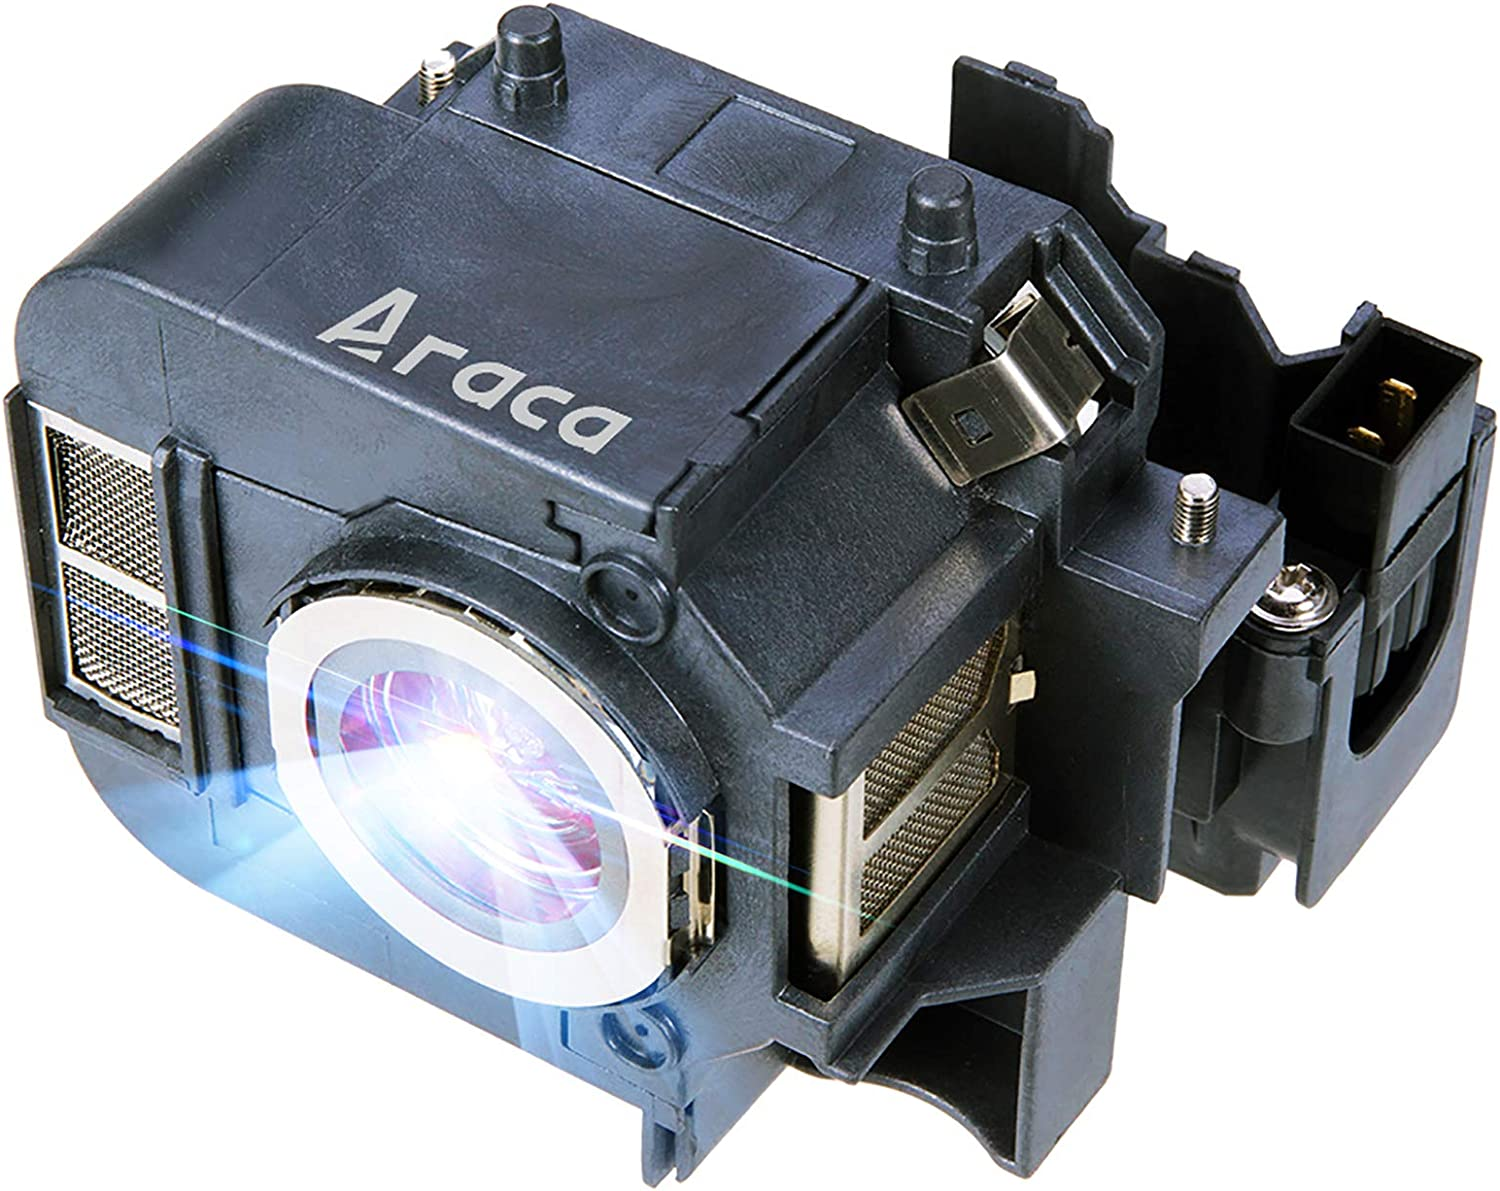 Araca ELPLP50 Projector Lamp with Housing for Epson EB-85 H353A H296A EB-824H PowerLite 84 /PowerLite 84+ /PowerLite 85 /PowerLite 825 Replacement Projector Lamp